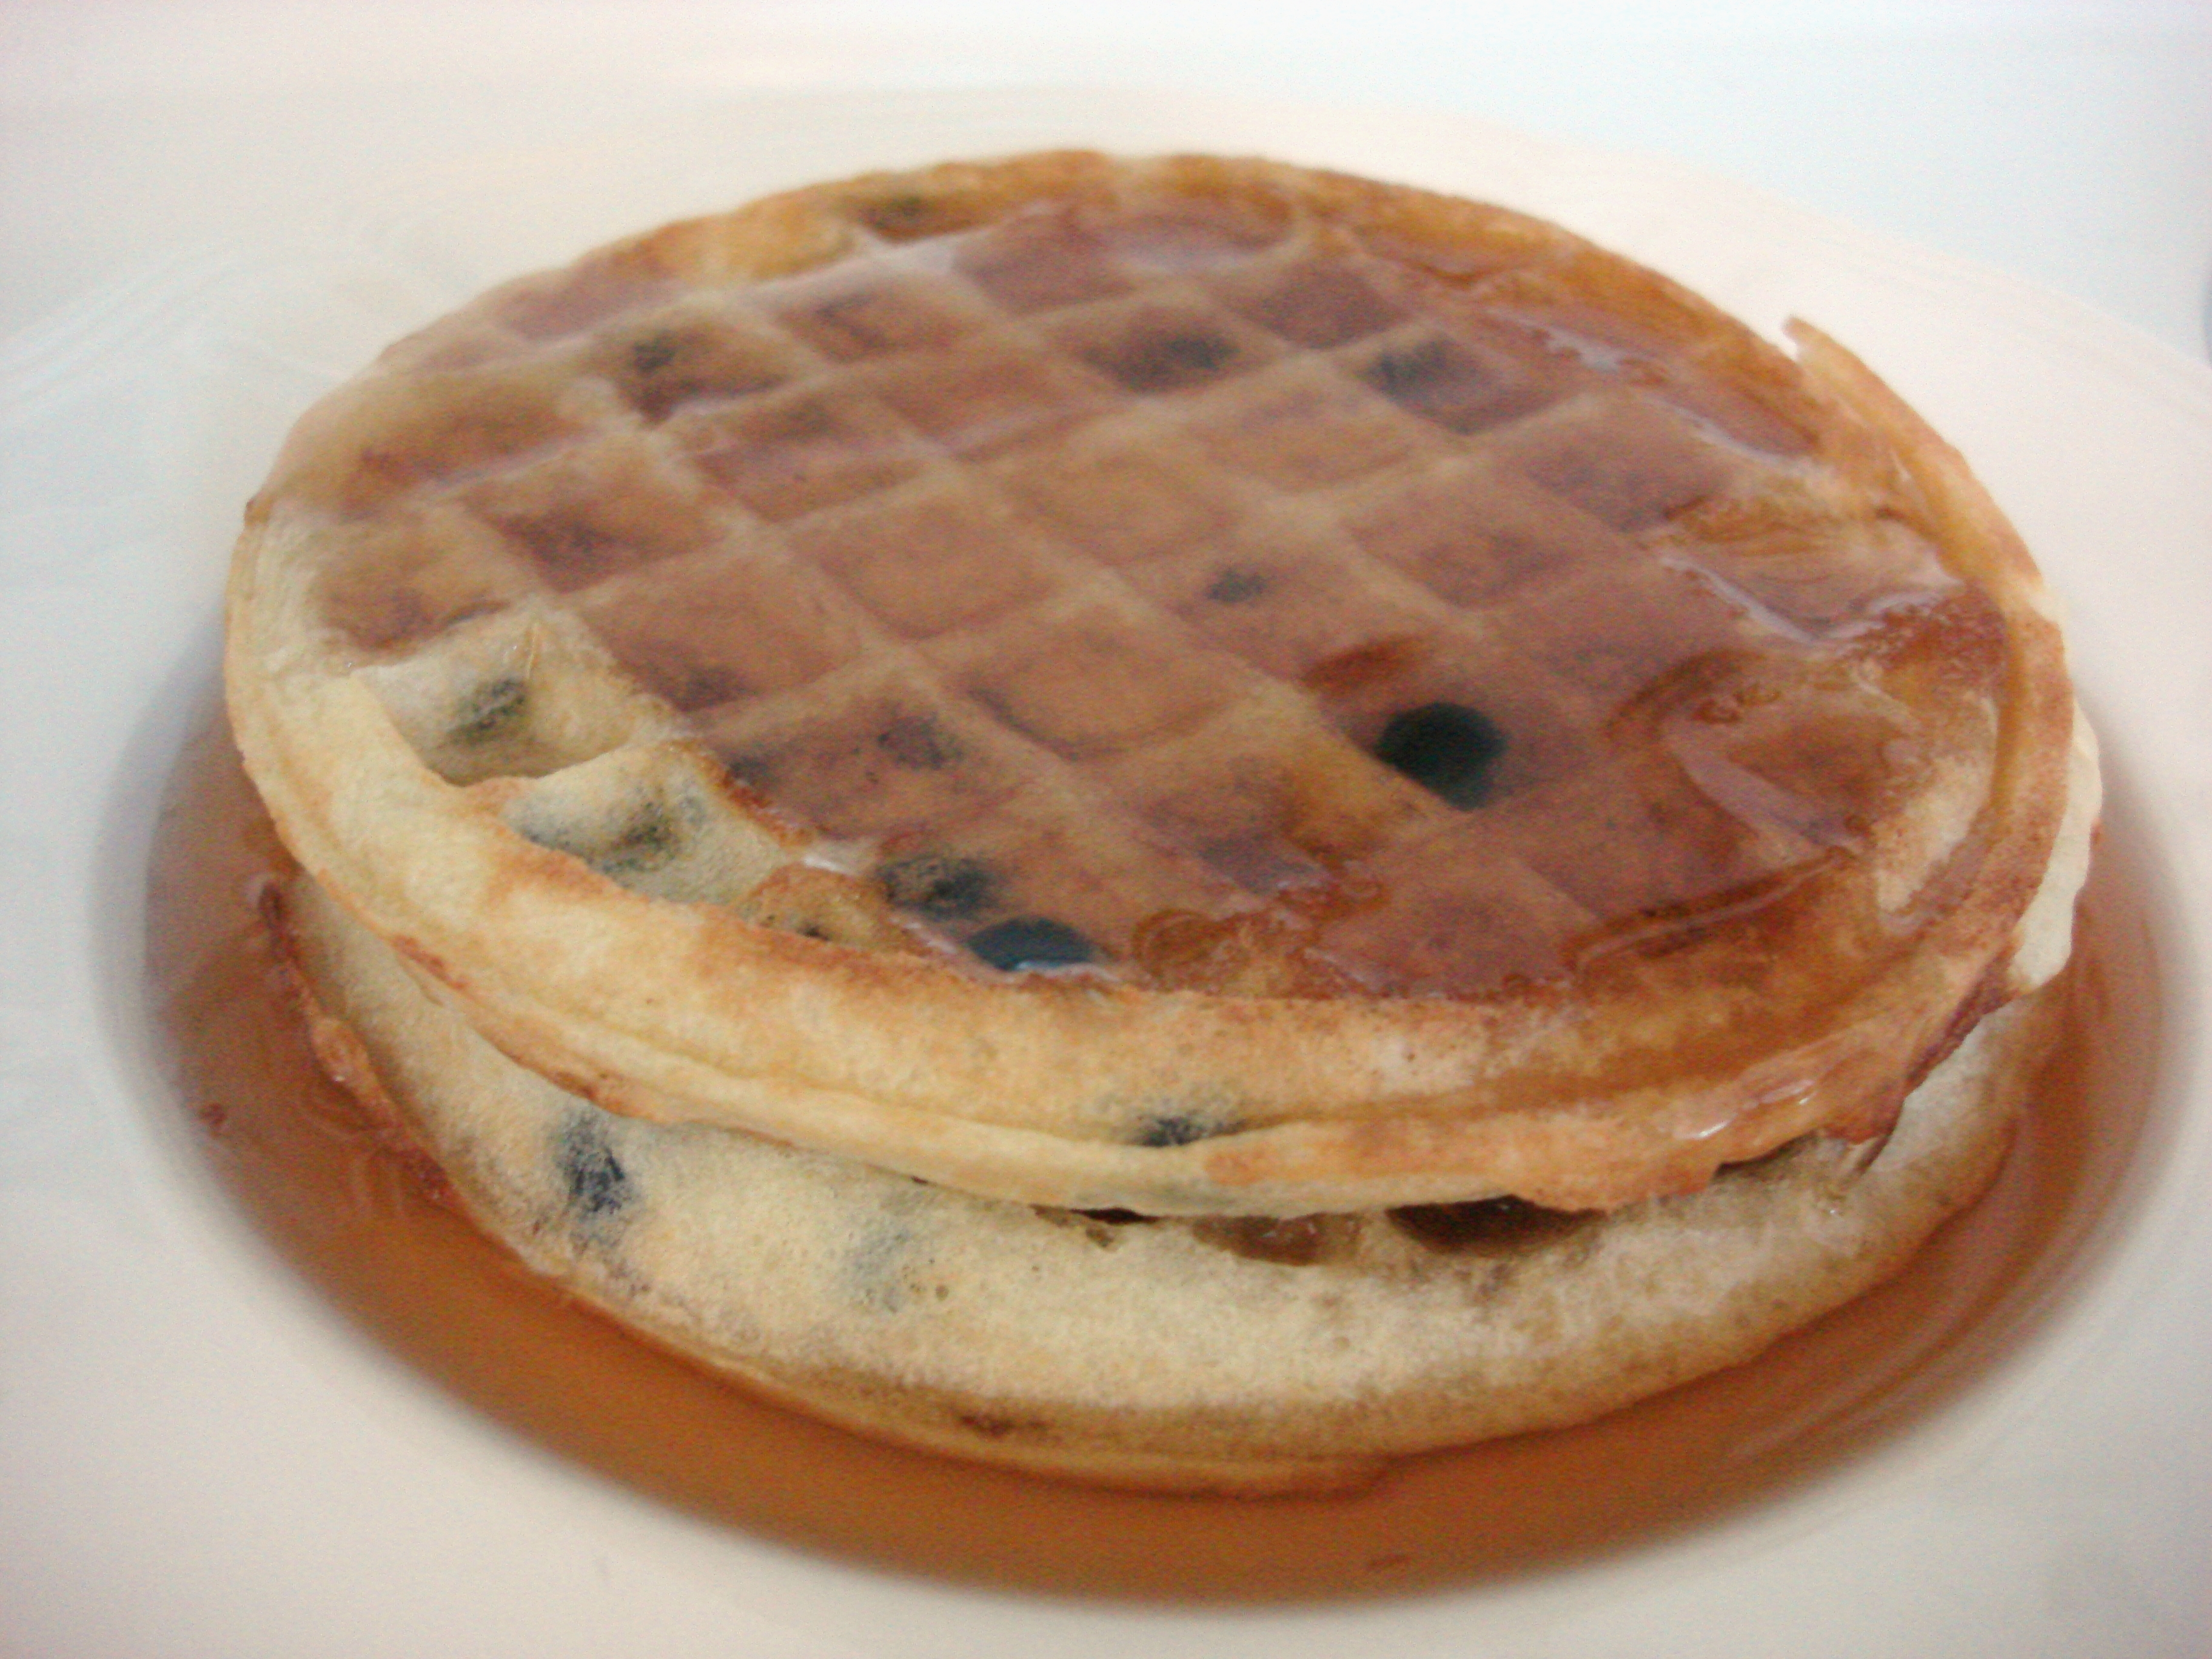 File:Toaster waffles with maple syrup.jpg - Wikipedia, the free ...